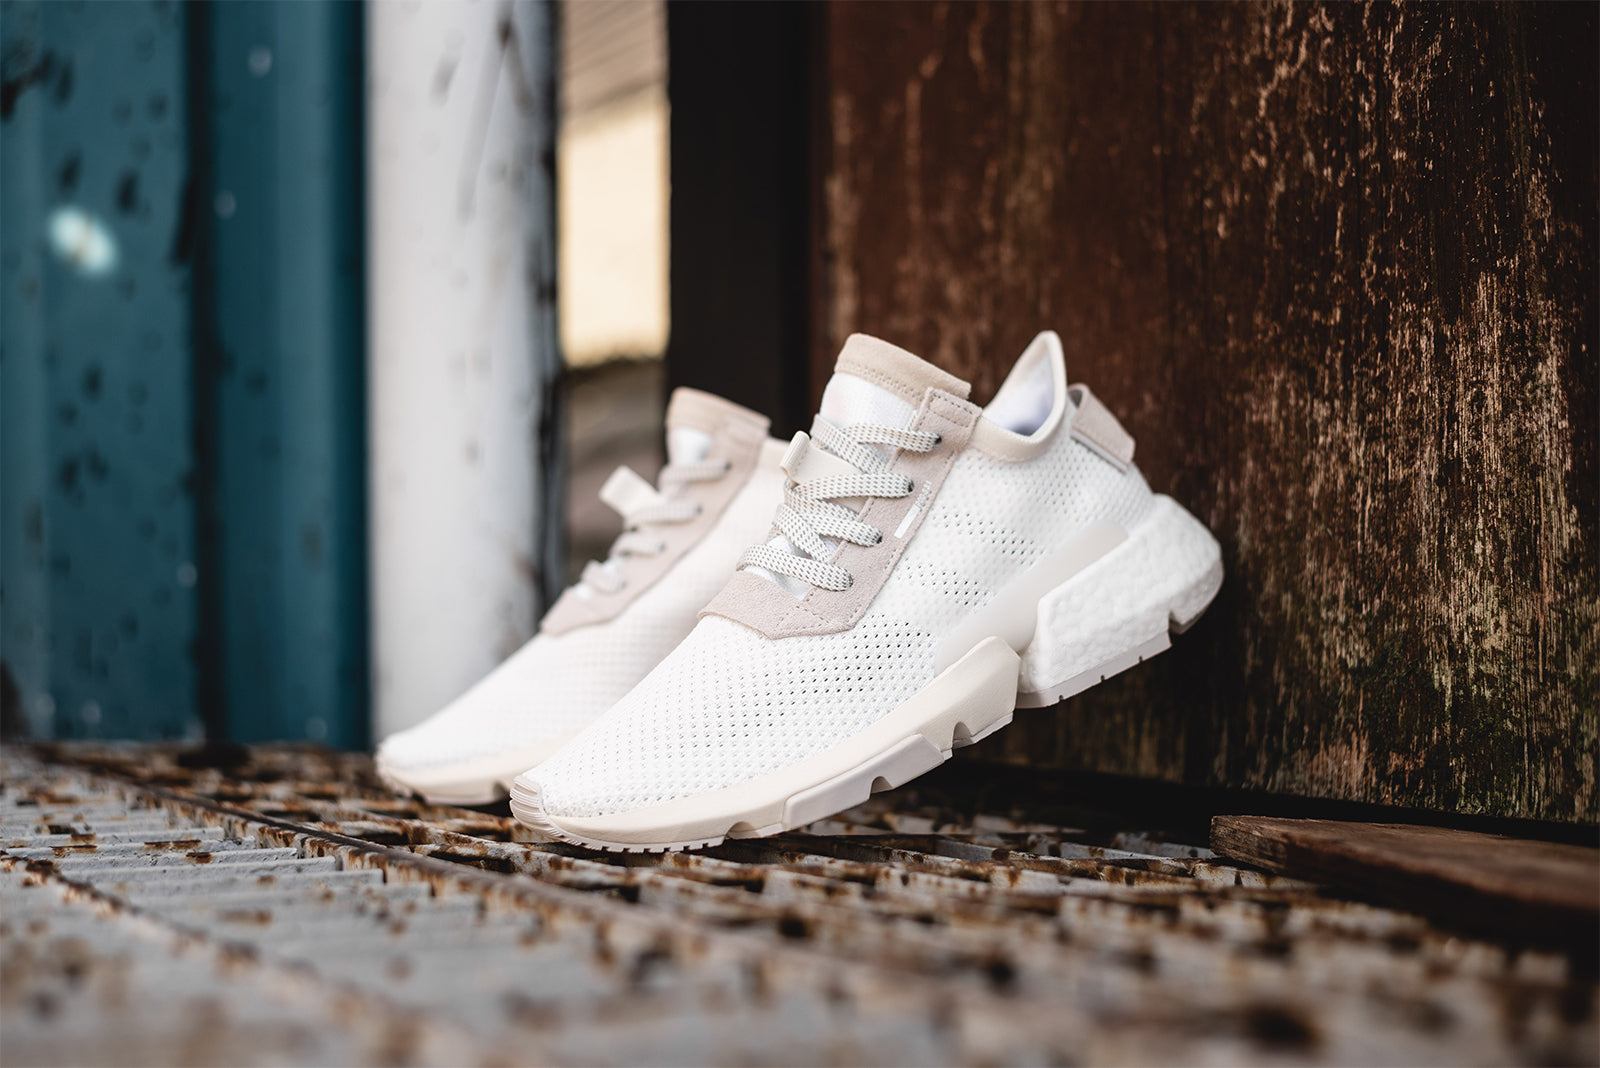 ad0b2f06688e adidas POD-S3.1. B28089 FTWWHT FTWWHT GREONE Price  £99.00. Launch   Wednesday 1st August ONLINE  23 00BST